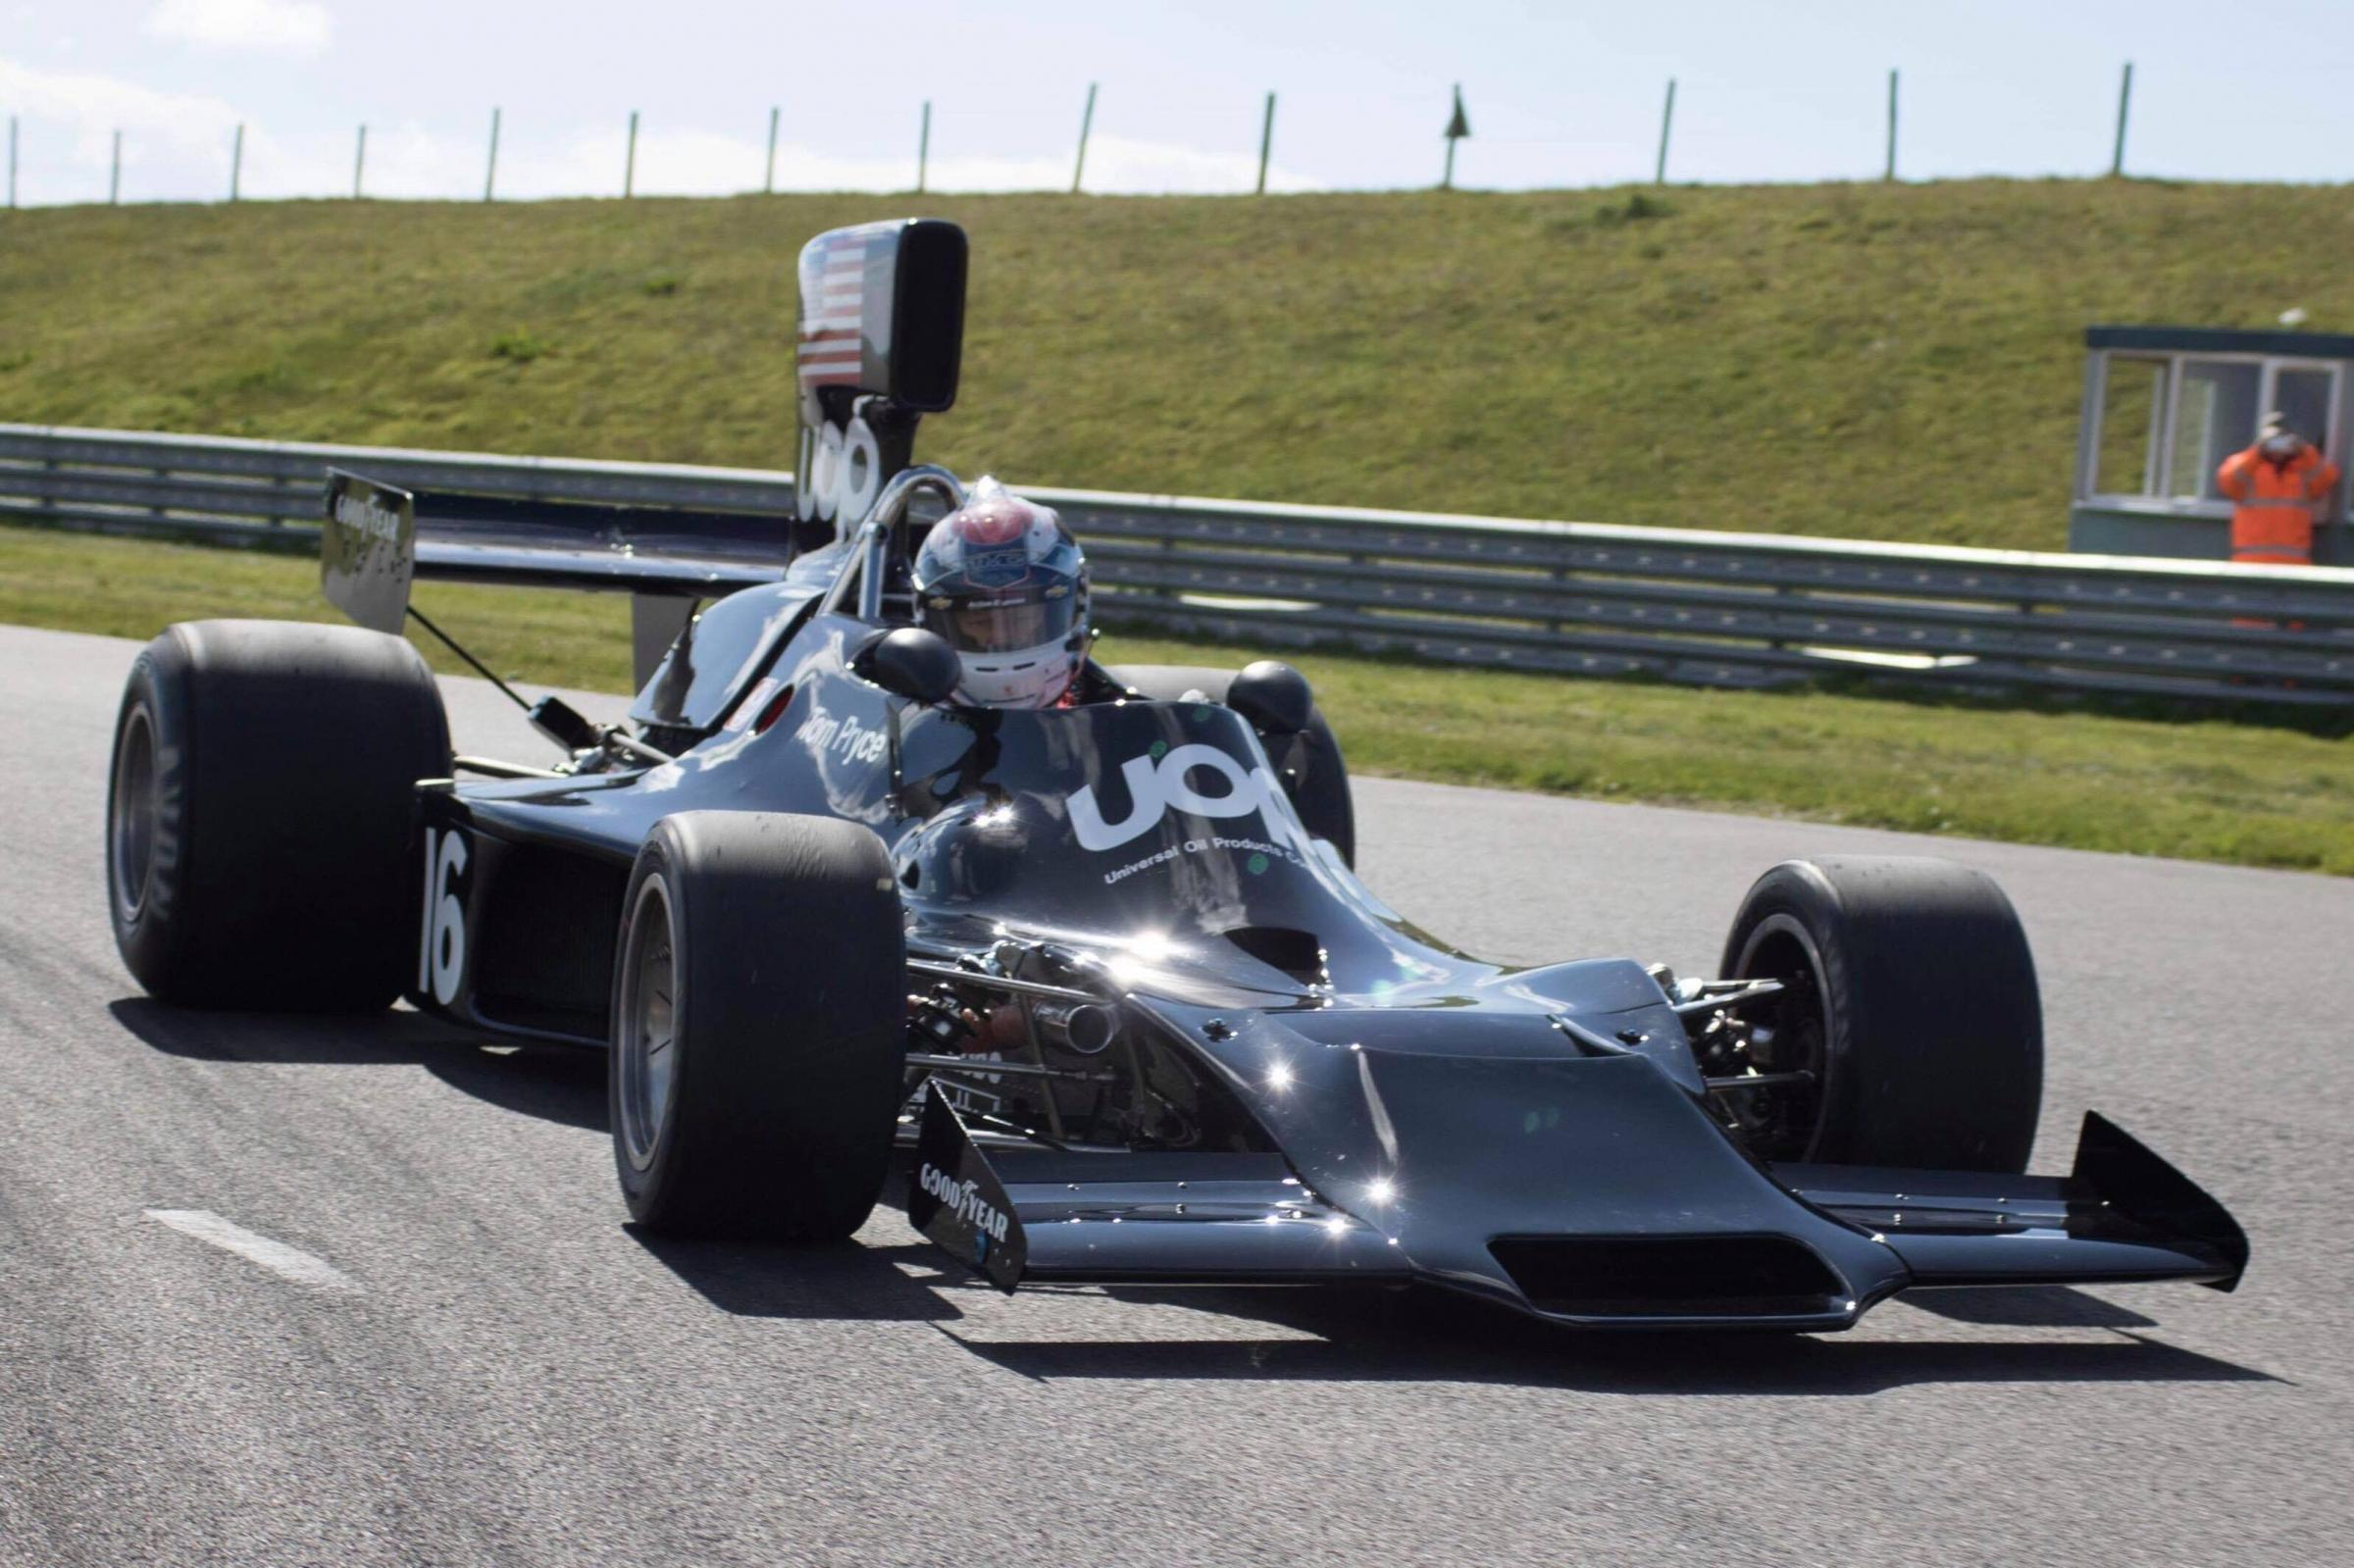 Tom Pryce's Shadow DN3 at the Anglesey Circuit